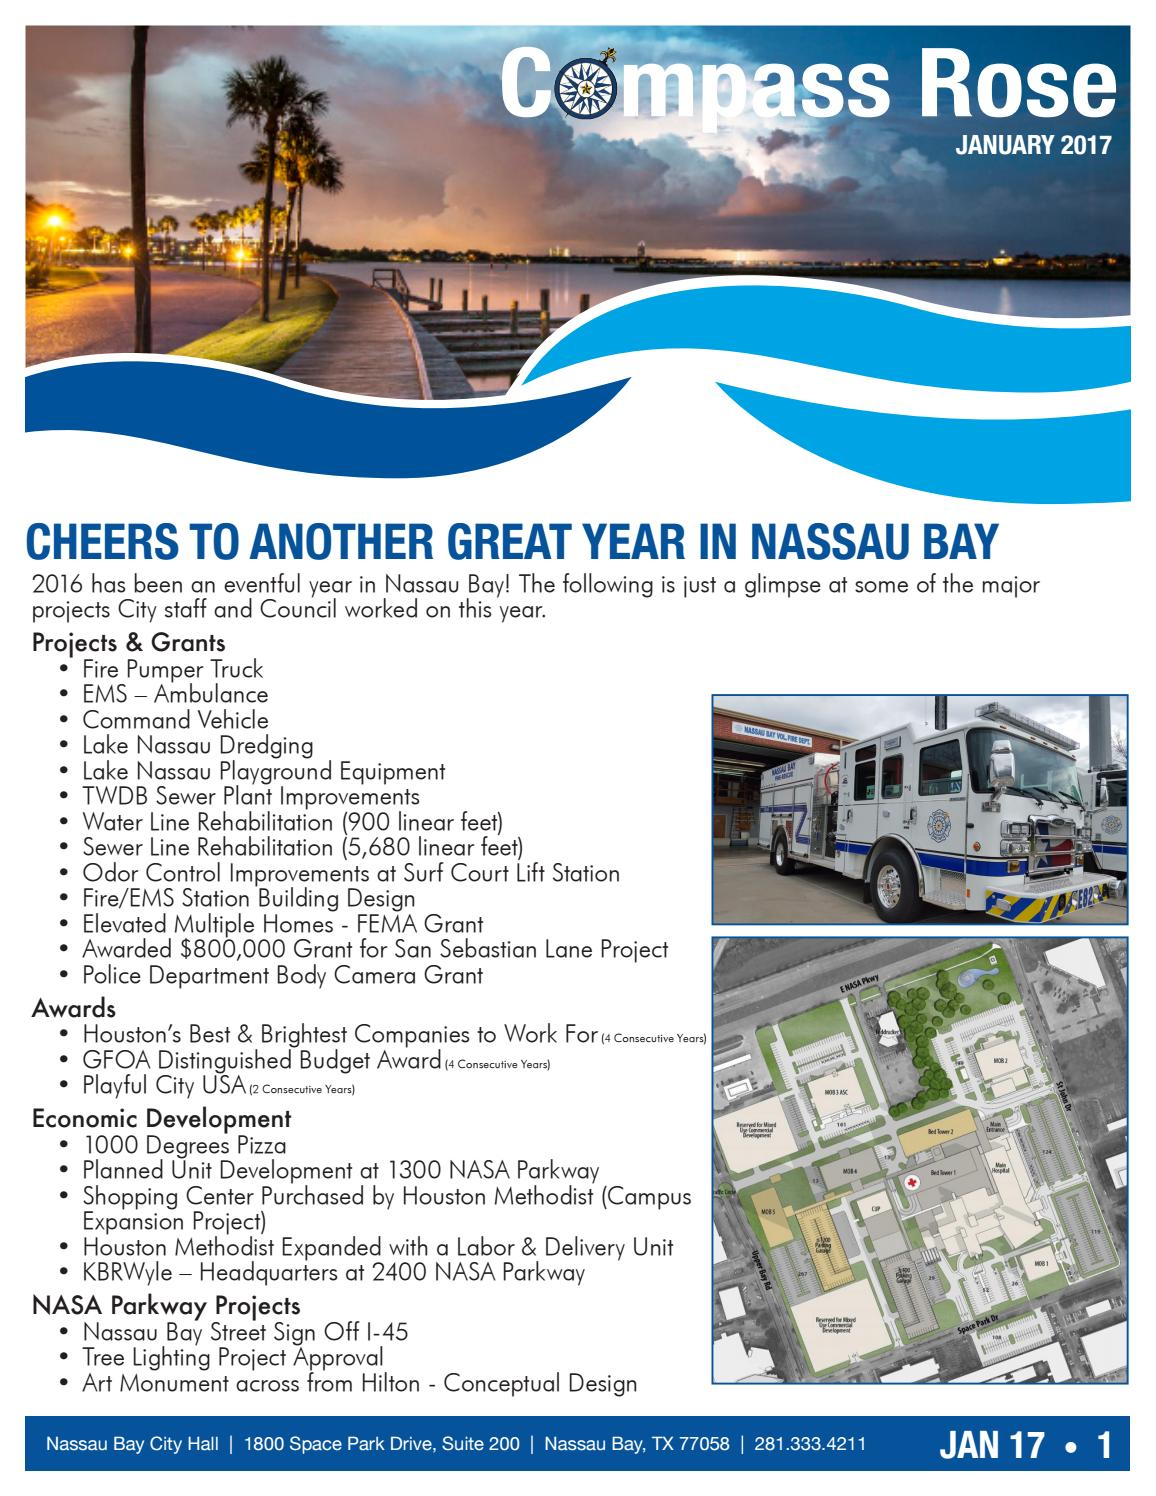 Nassau Bay Compass Rose Newsletter January 2017 By City